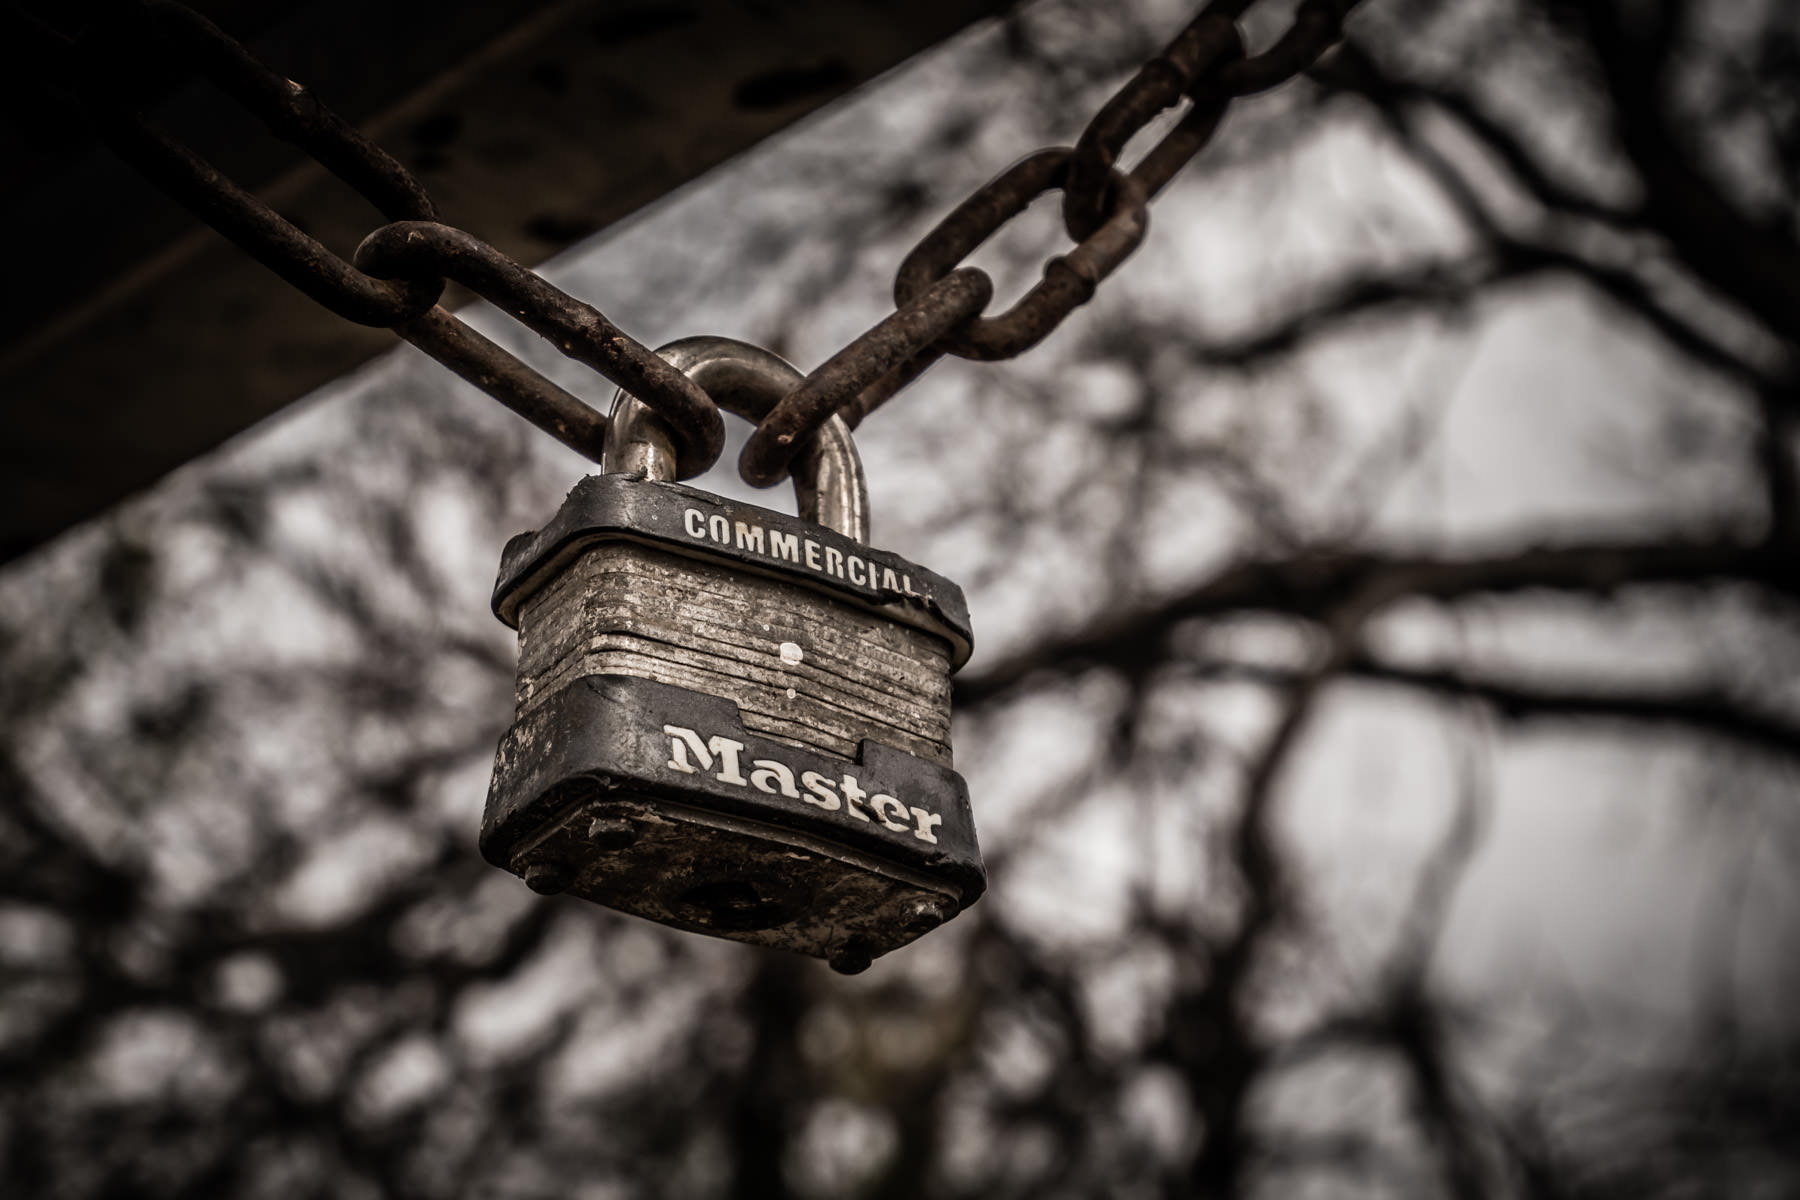 A padlock hangs from a chain in Richardson, Texas' Breckinridge Park.